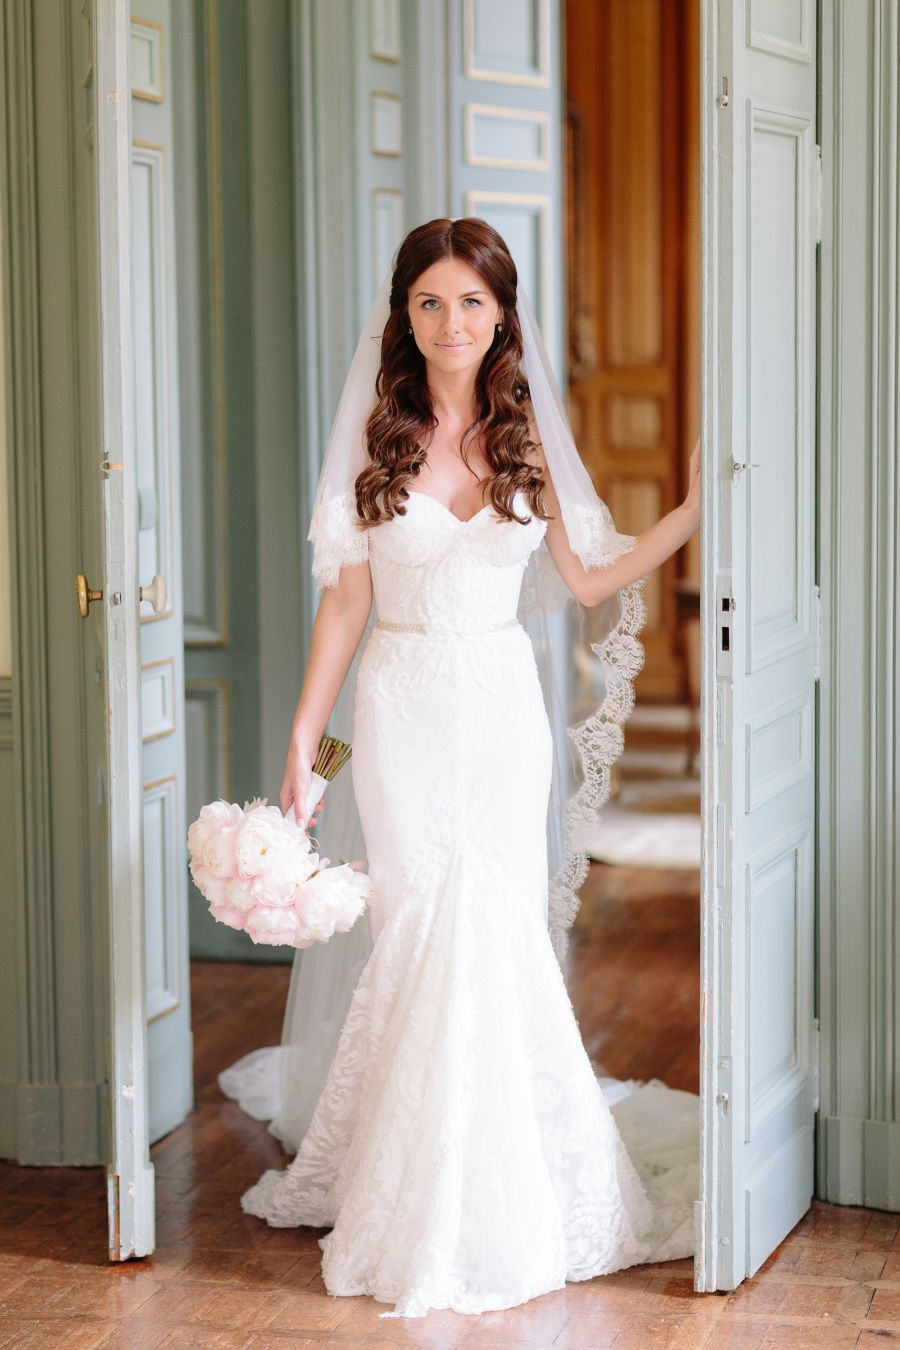 Wedding dresses downtown la  Chic Shoes  Pink Peonies Set Our Stylish Hearts Aflutter  Read